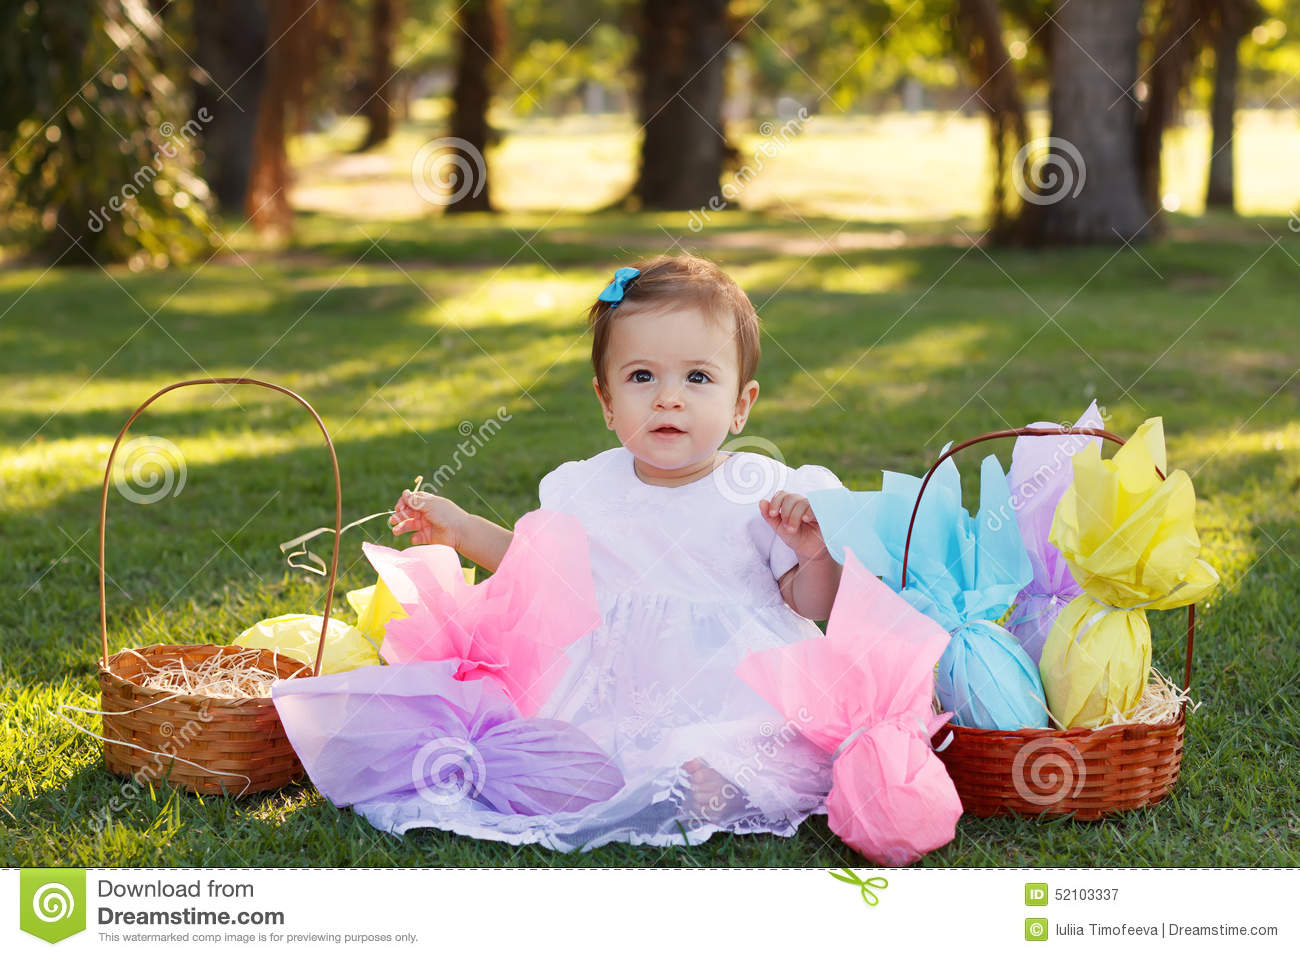 54e9e368f3c7 Cute little baby girl in white dress near wicker basket with Easter  chocolate eggs in park on green grass. Selective focus